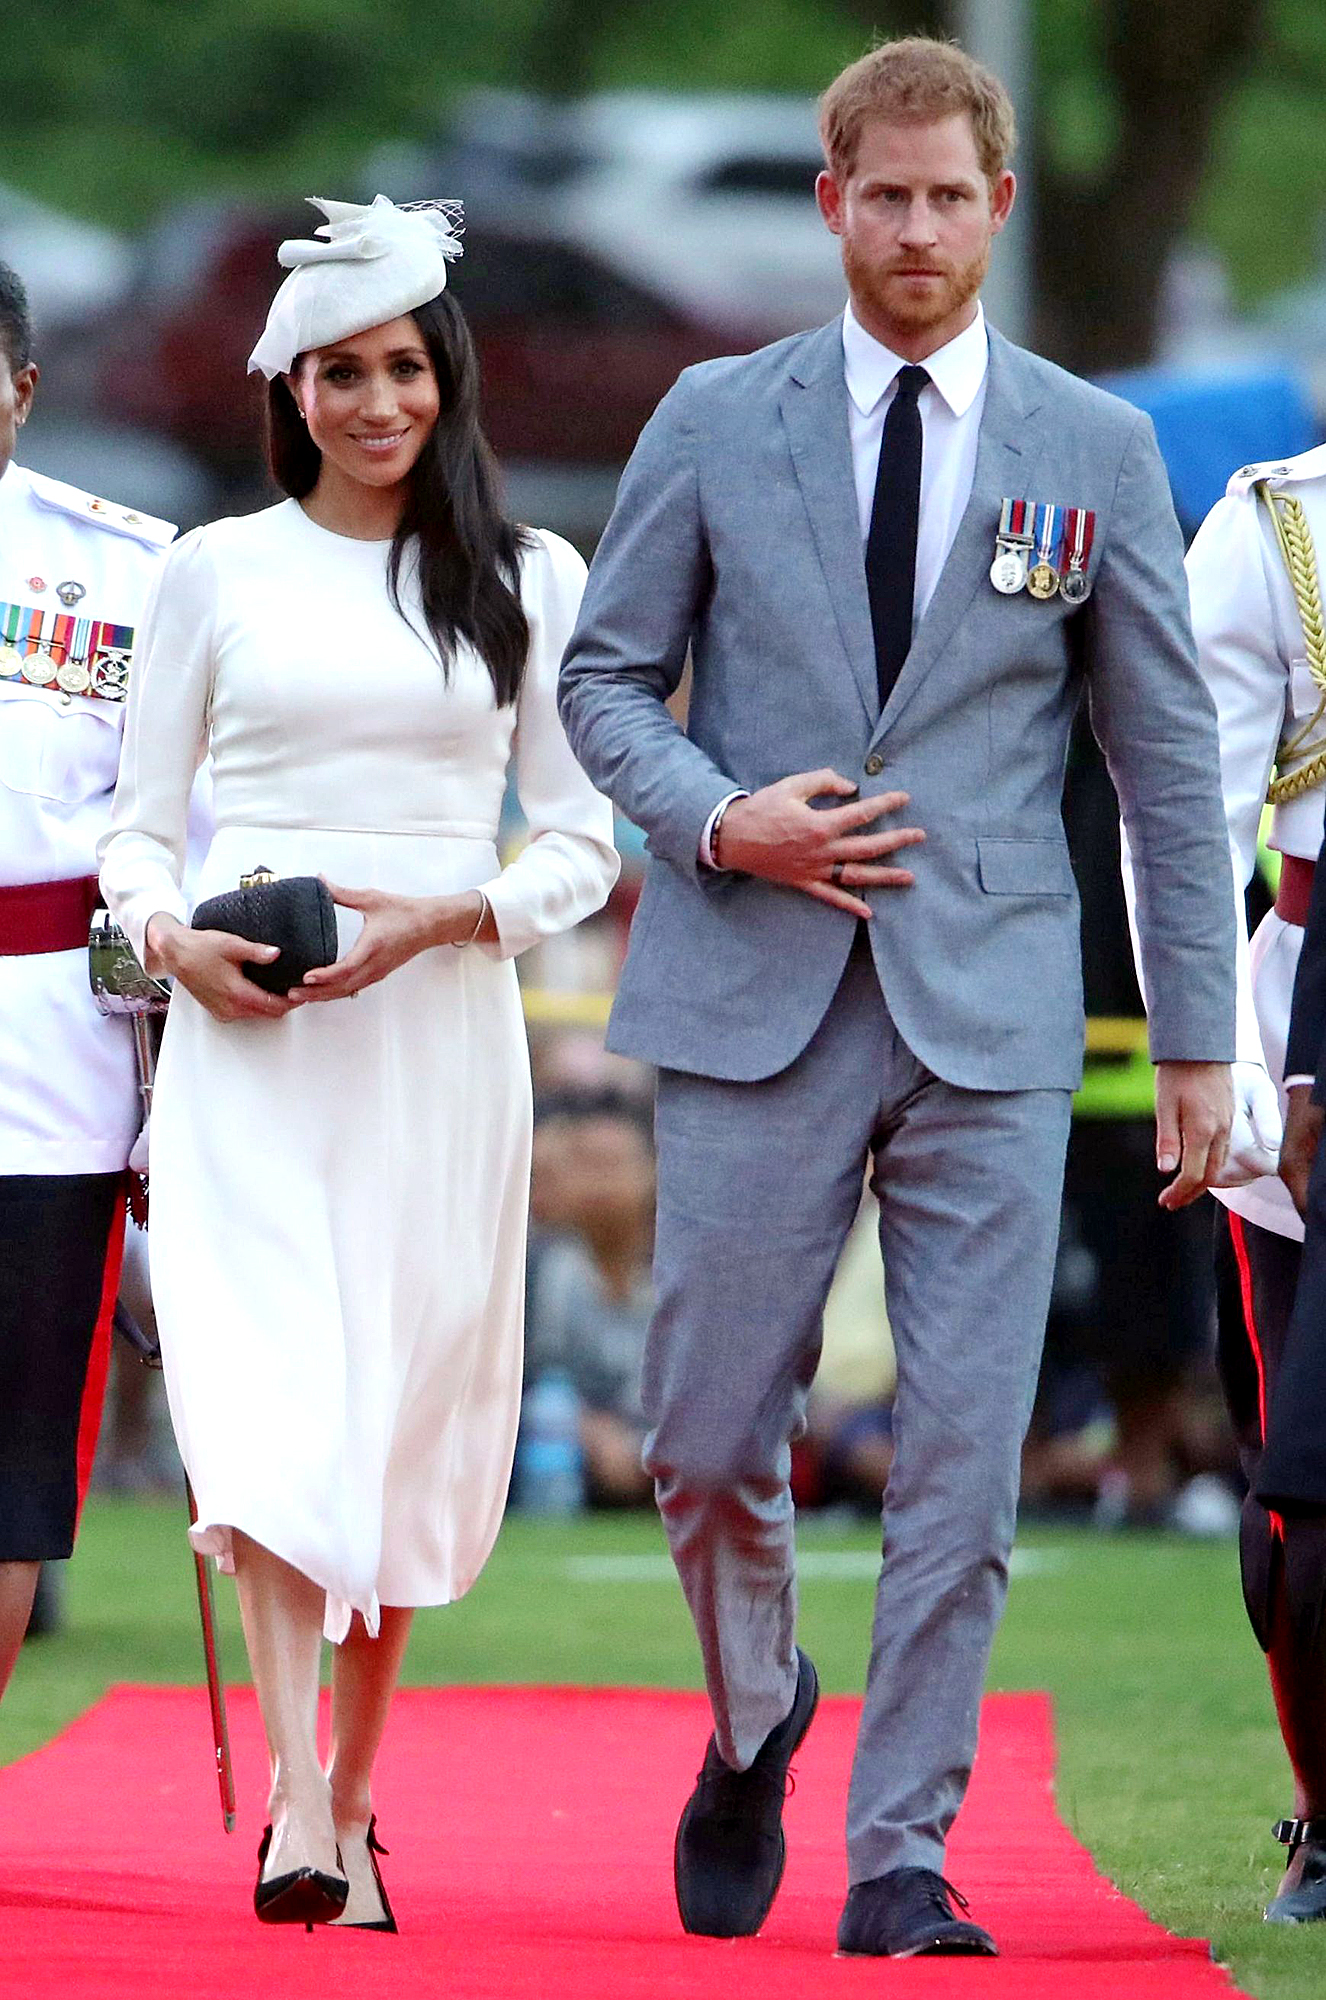 Prince Harry and Meghan Duchess of Sussex tour of Fiji - 23 Oct 2018